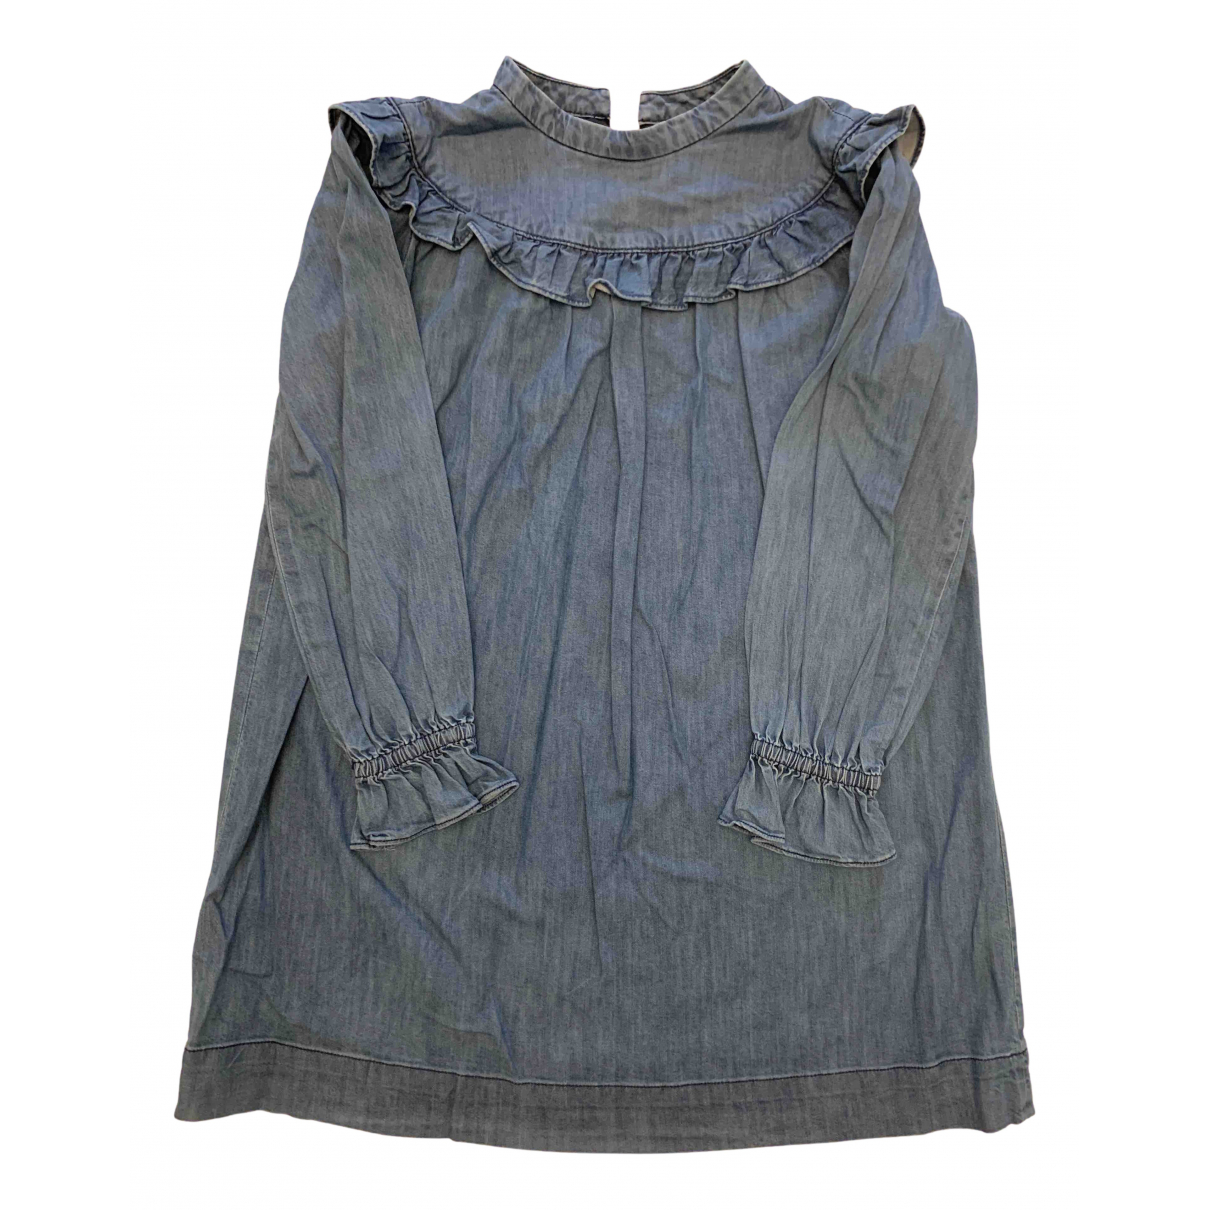 Bonpoint N Blue Denim - Jeans dress for Kids 10 years - up to 142cm FR